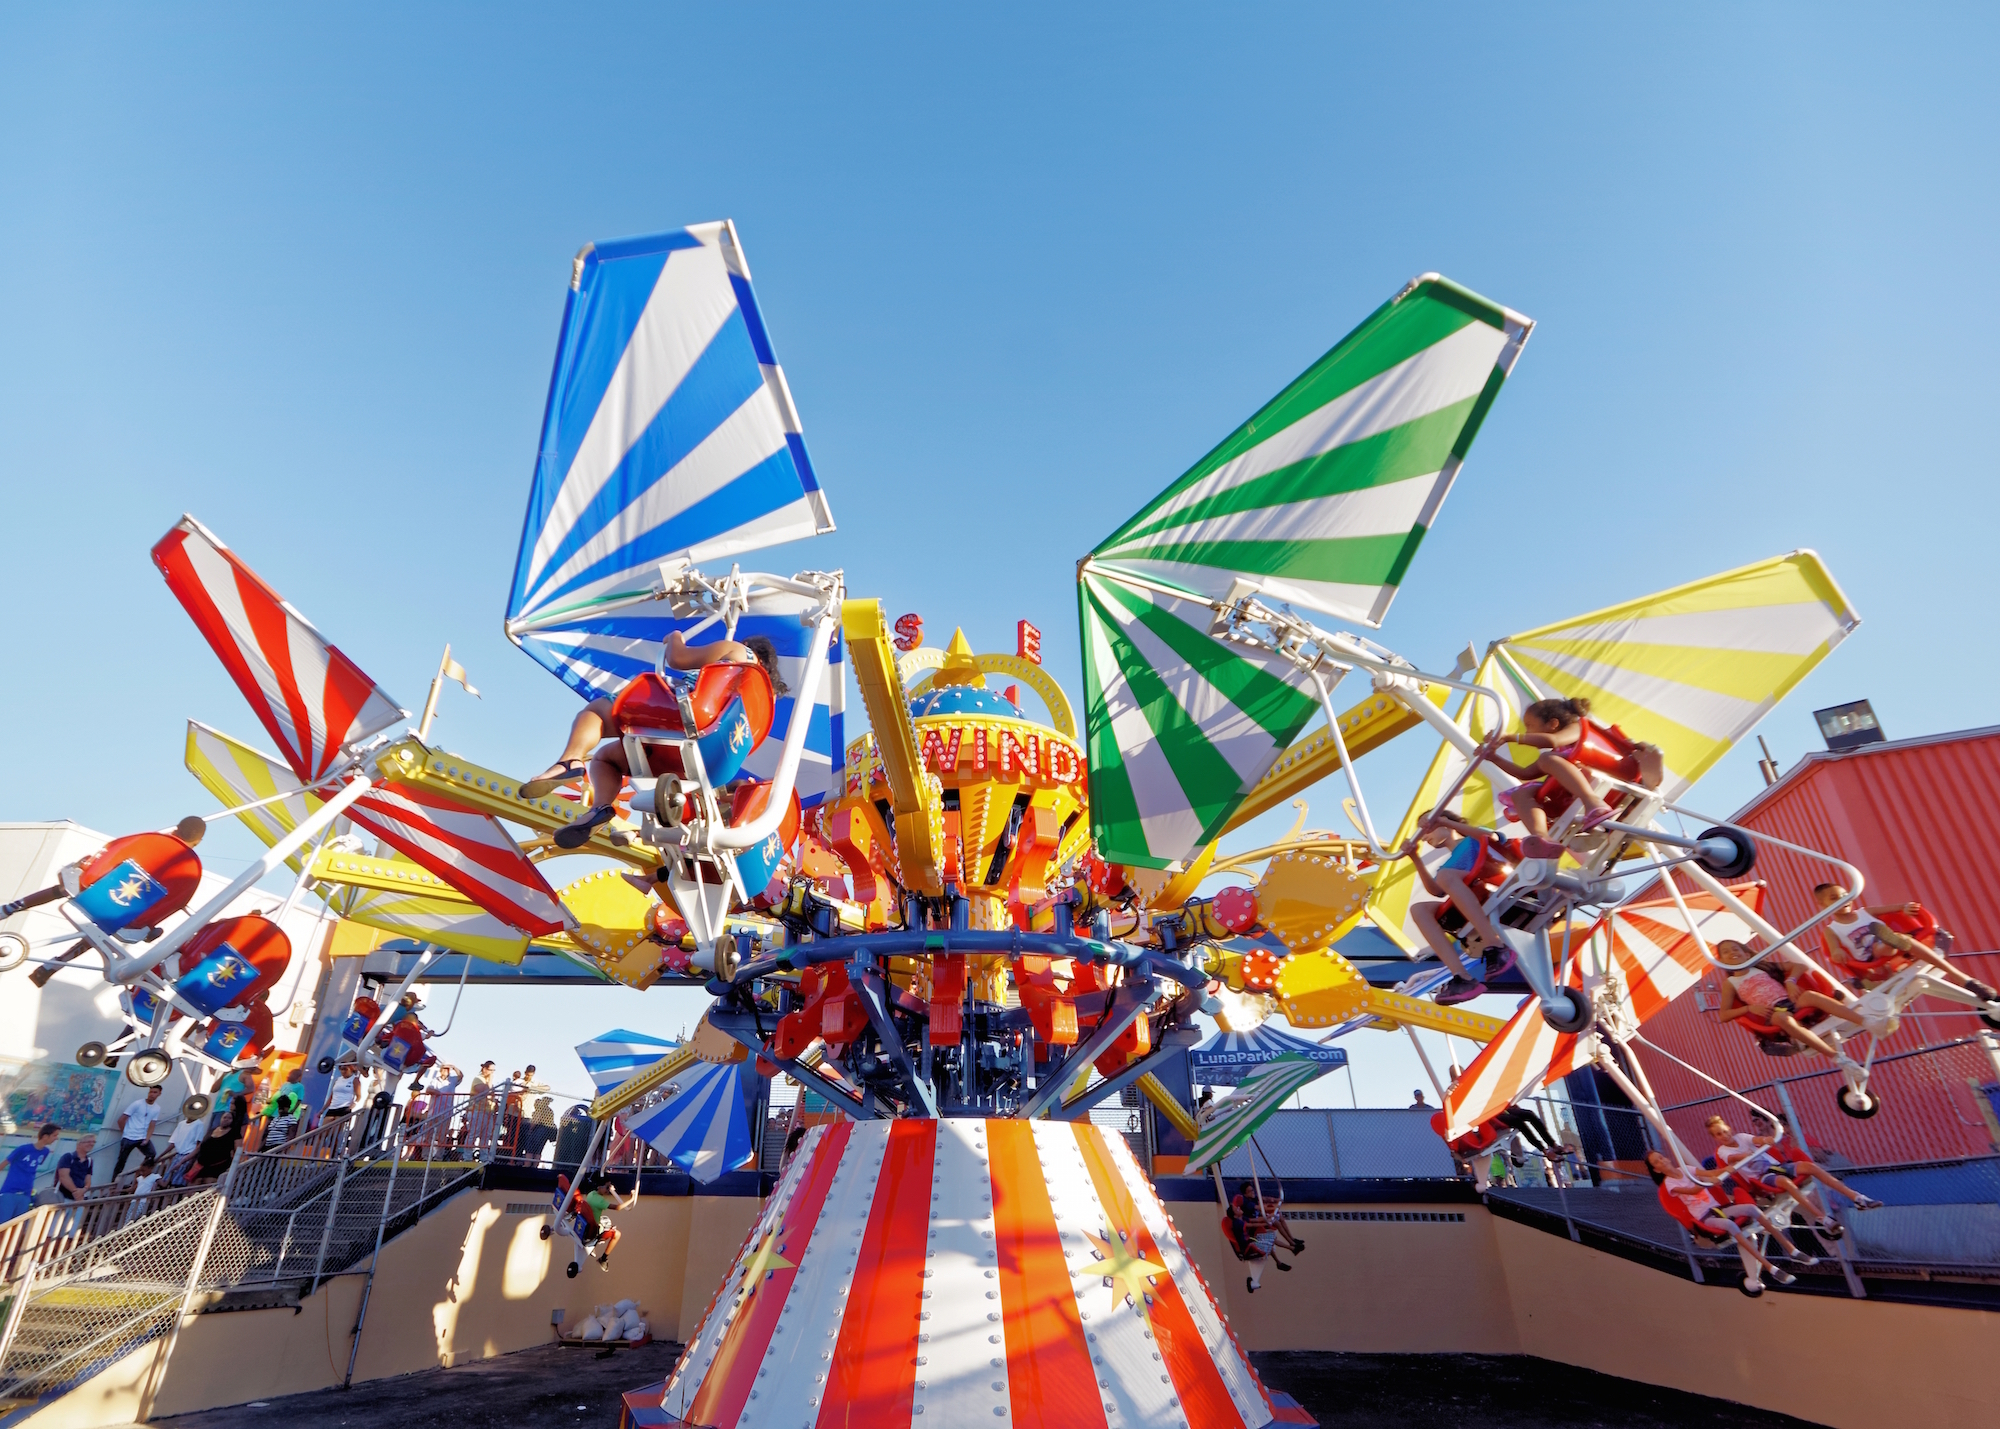 Reopening plans for amusement parks